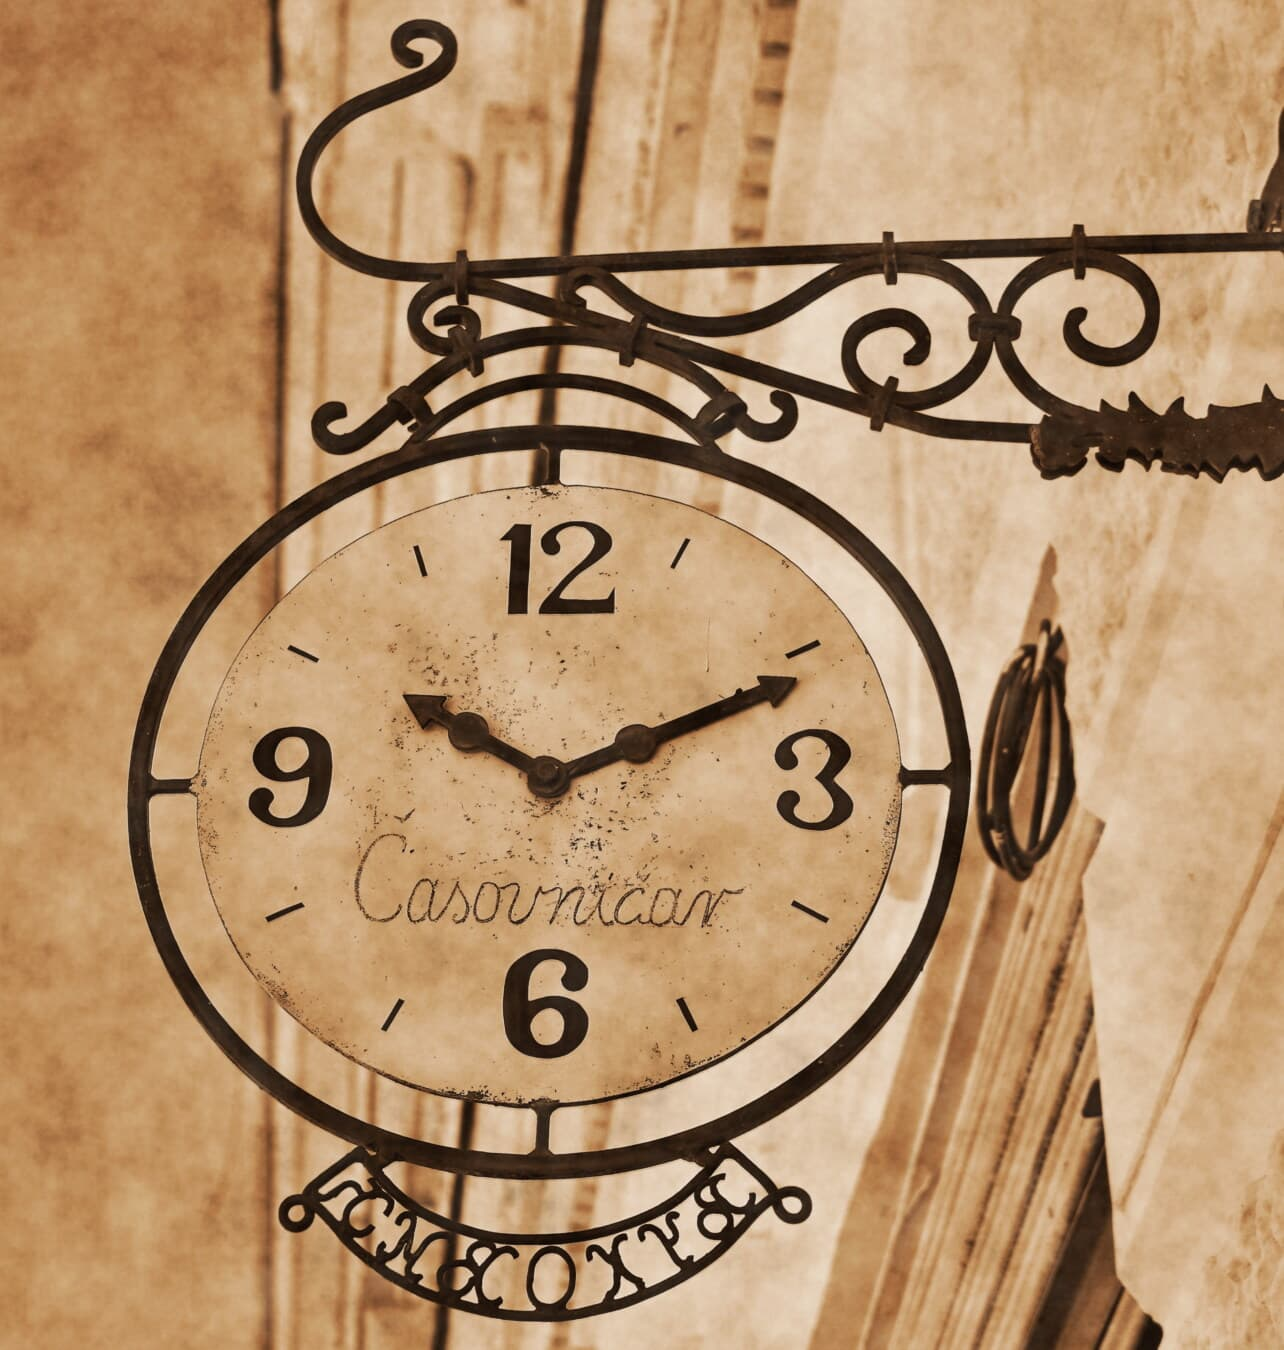 old style, wall, analog clock, hanging, street, cast iron, timepiece, minute, clock, hour